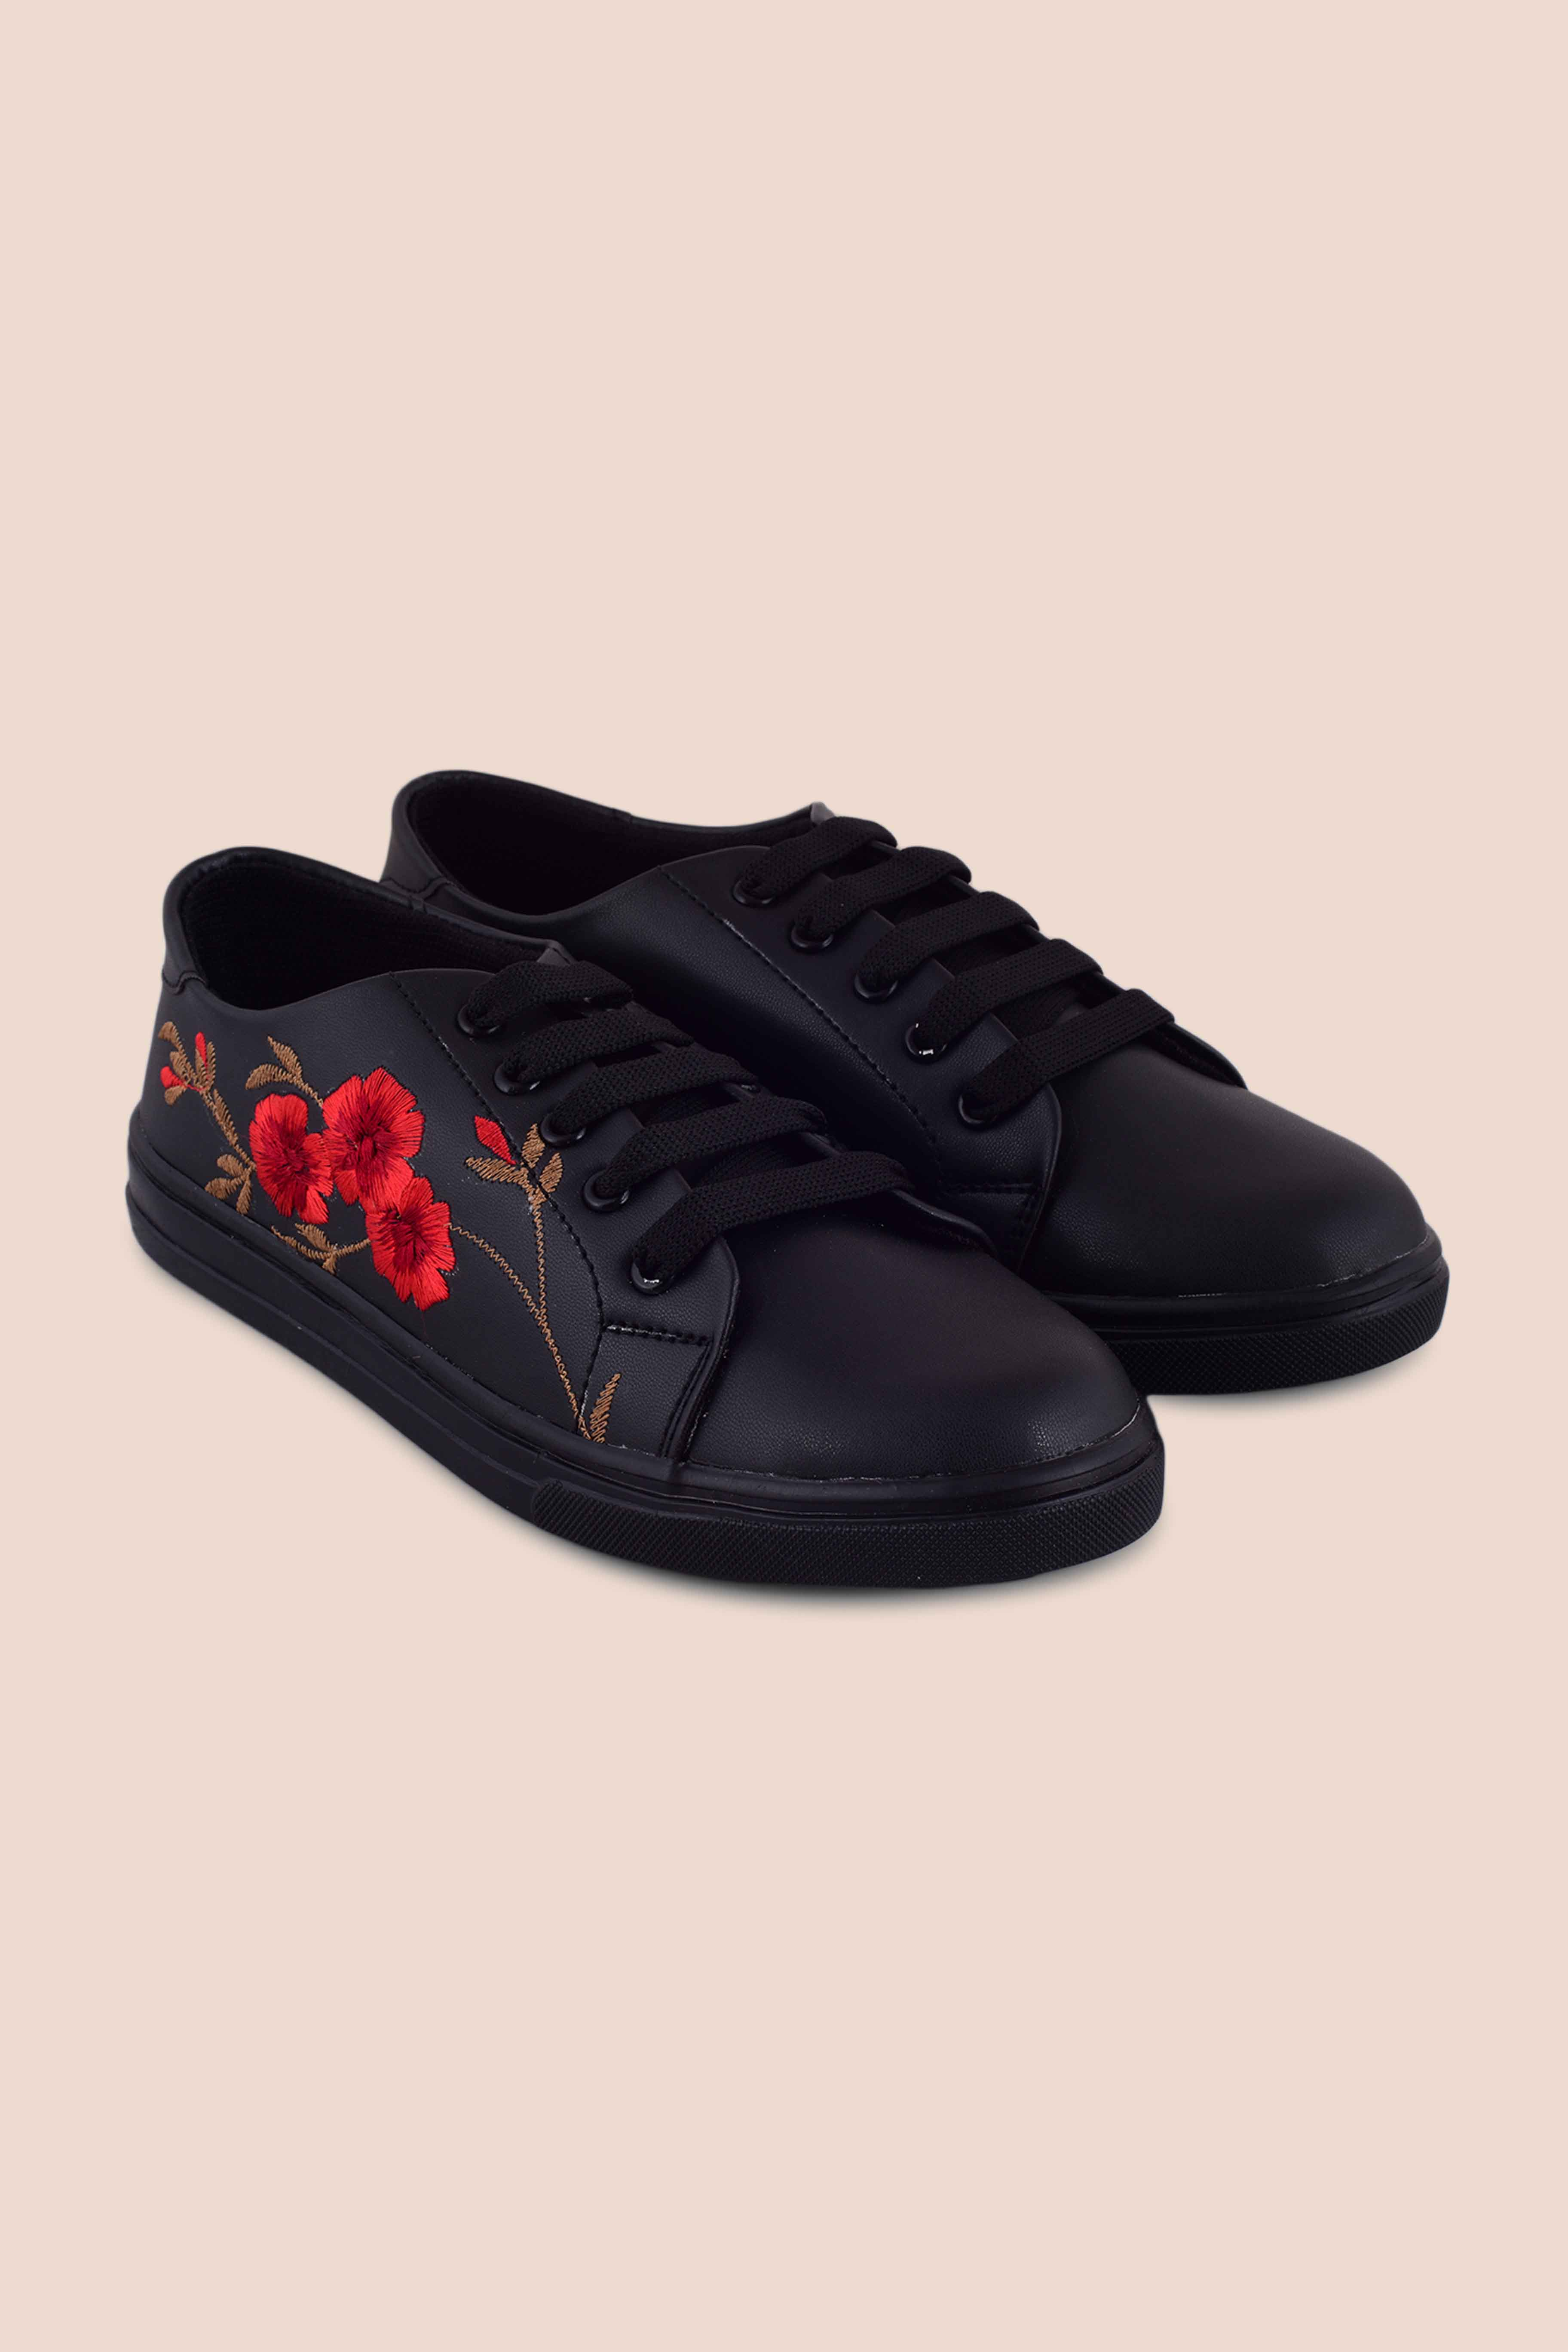 Folle Red Embroidery Black Party Wear Sneakers